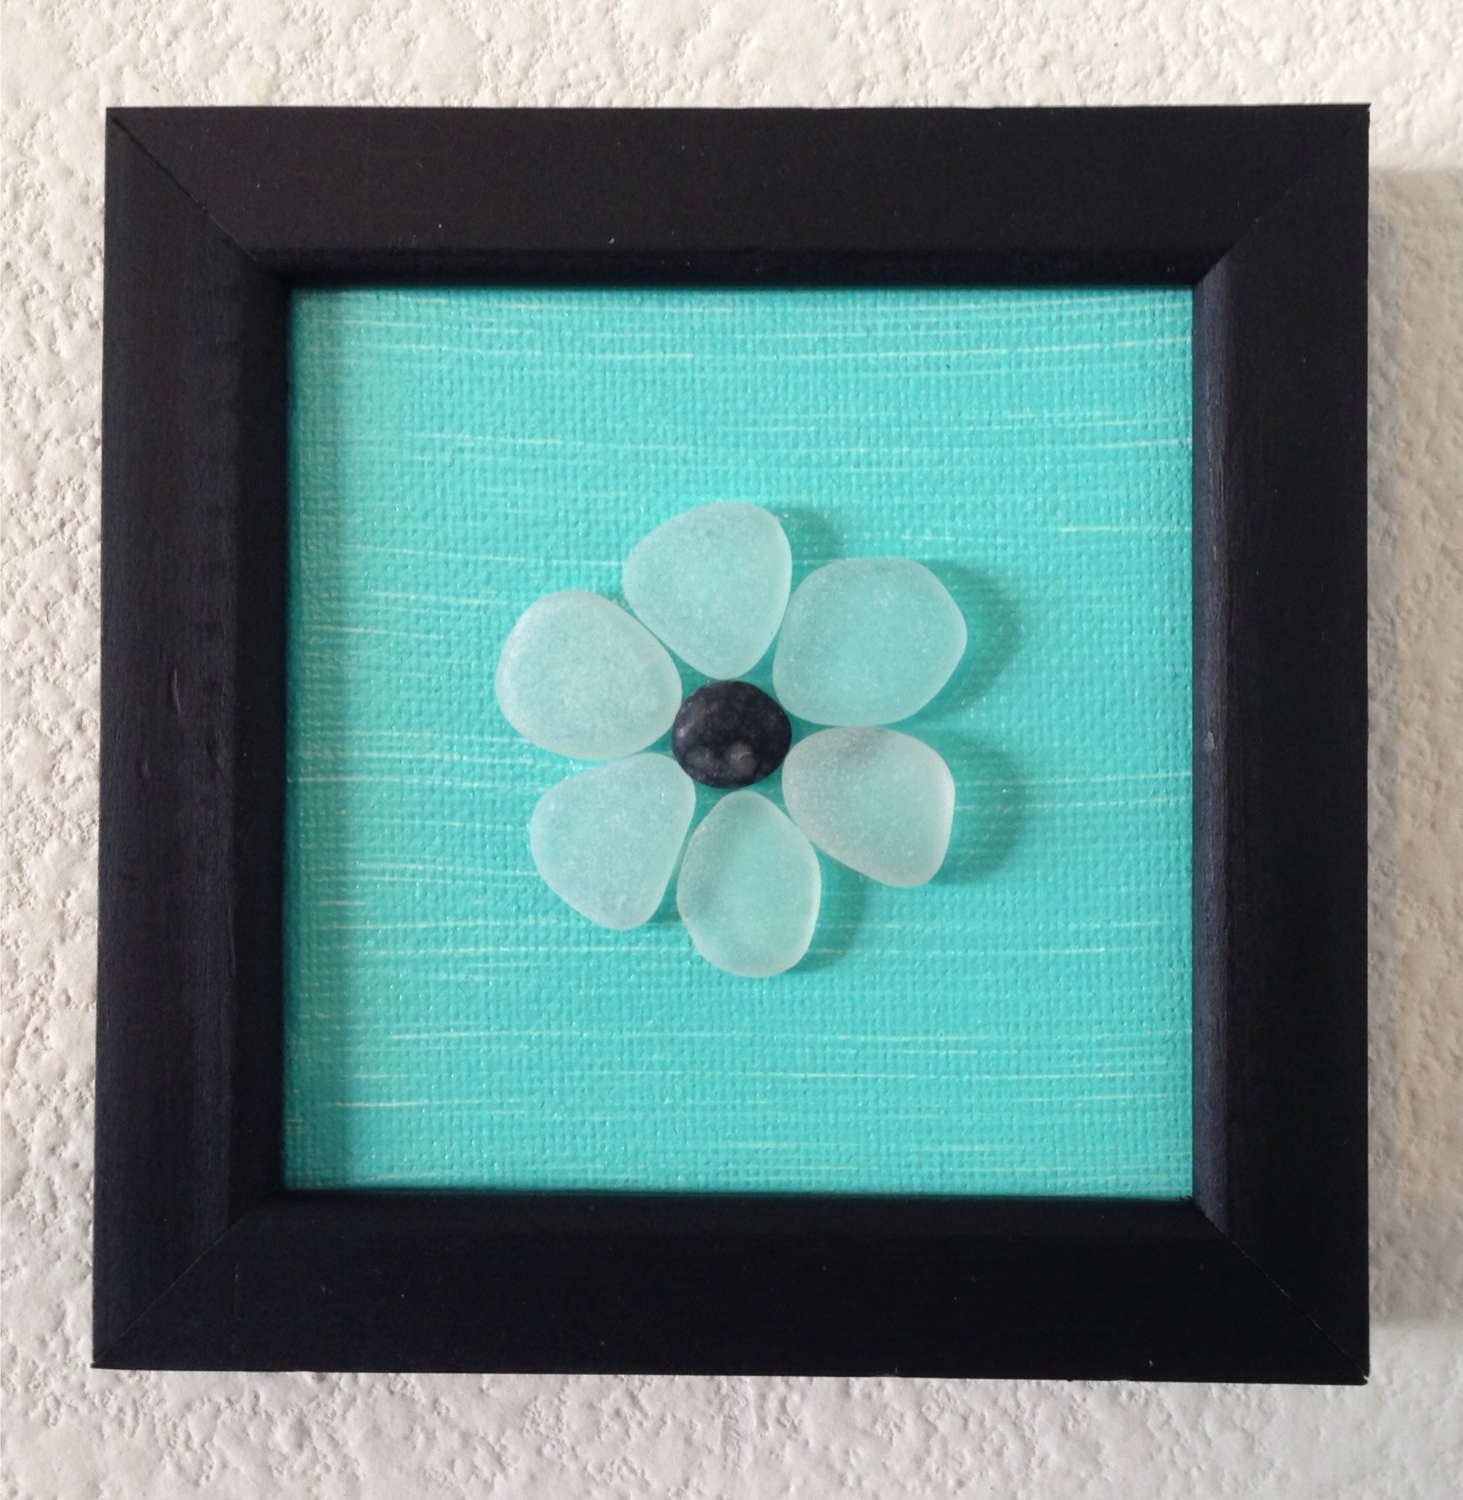 Fashionable Sea Glass Art/ Pebble Art/ Canvas Art/ Framed Art/ Acrylic, Sea Pertaining To Sea Glass Wall Art (View 5 of 15)